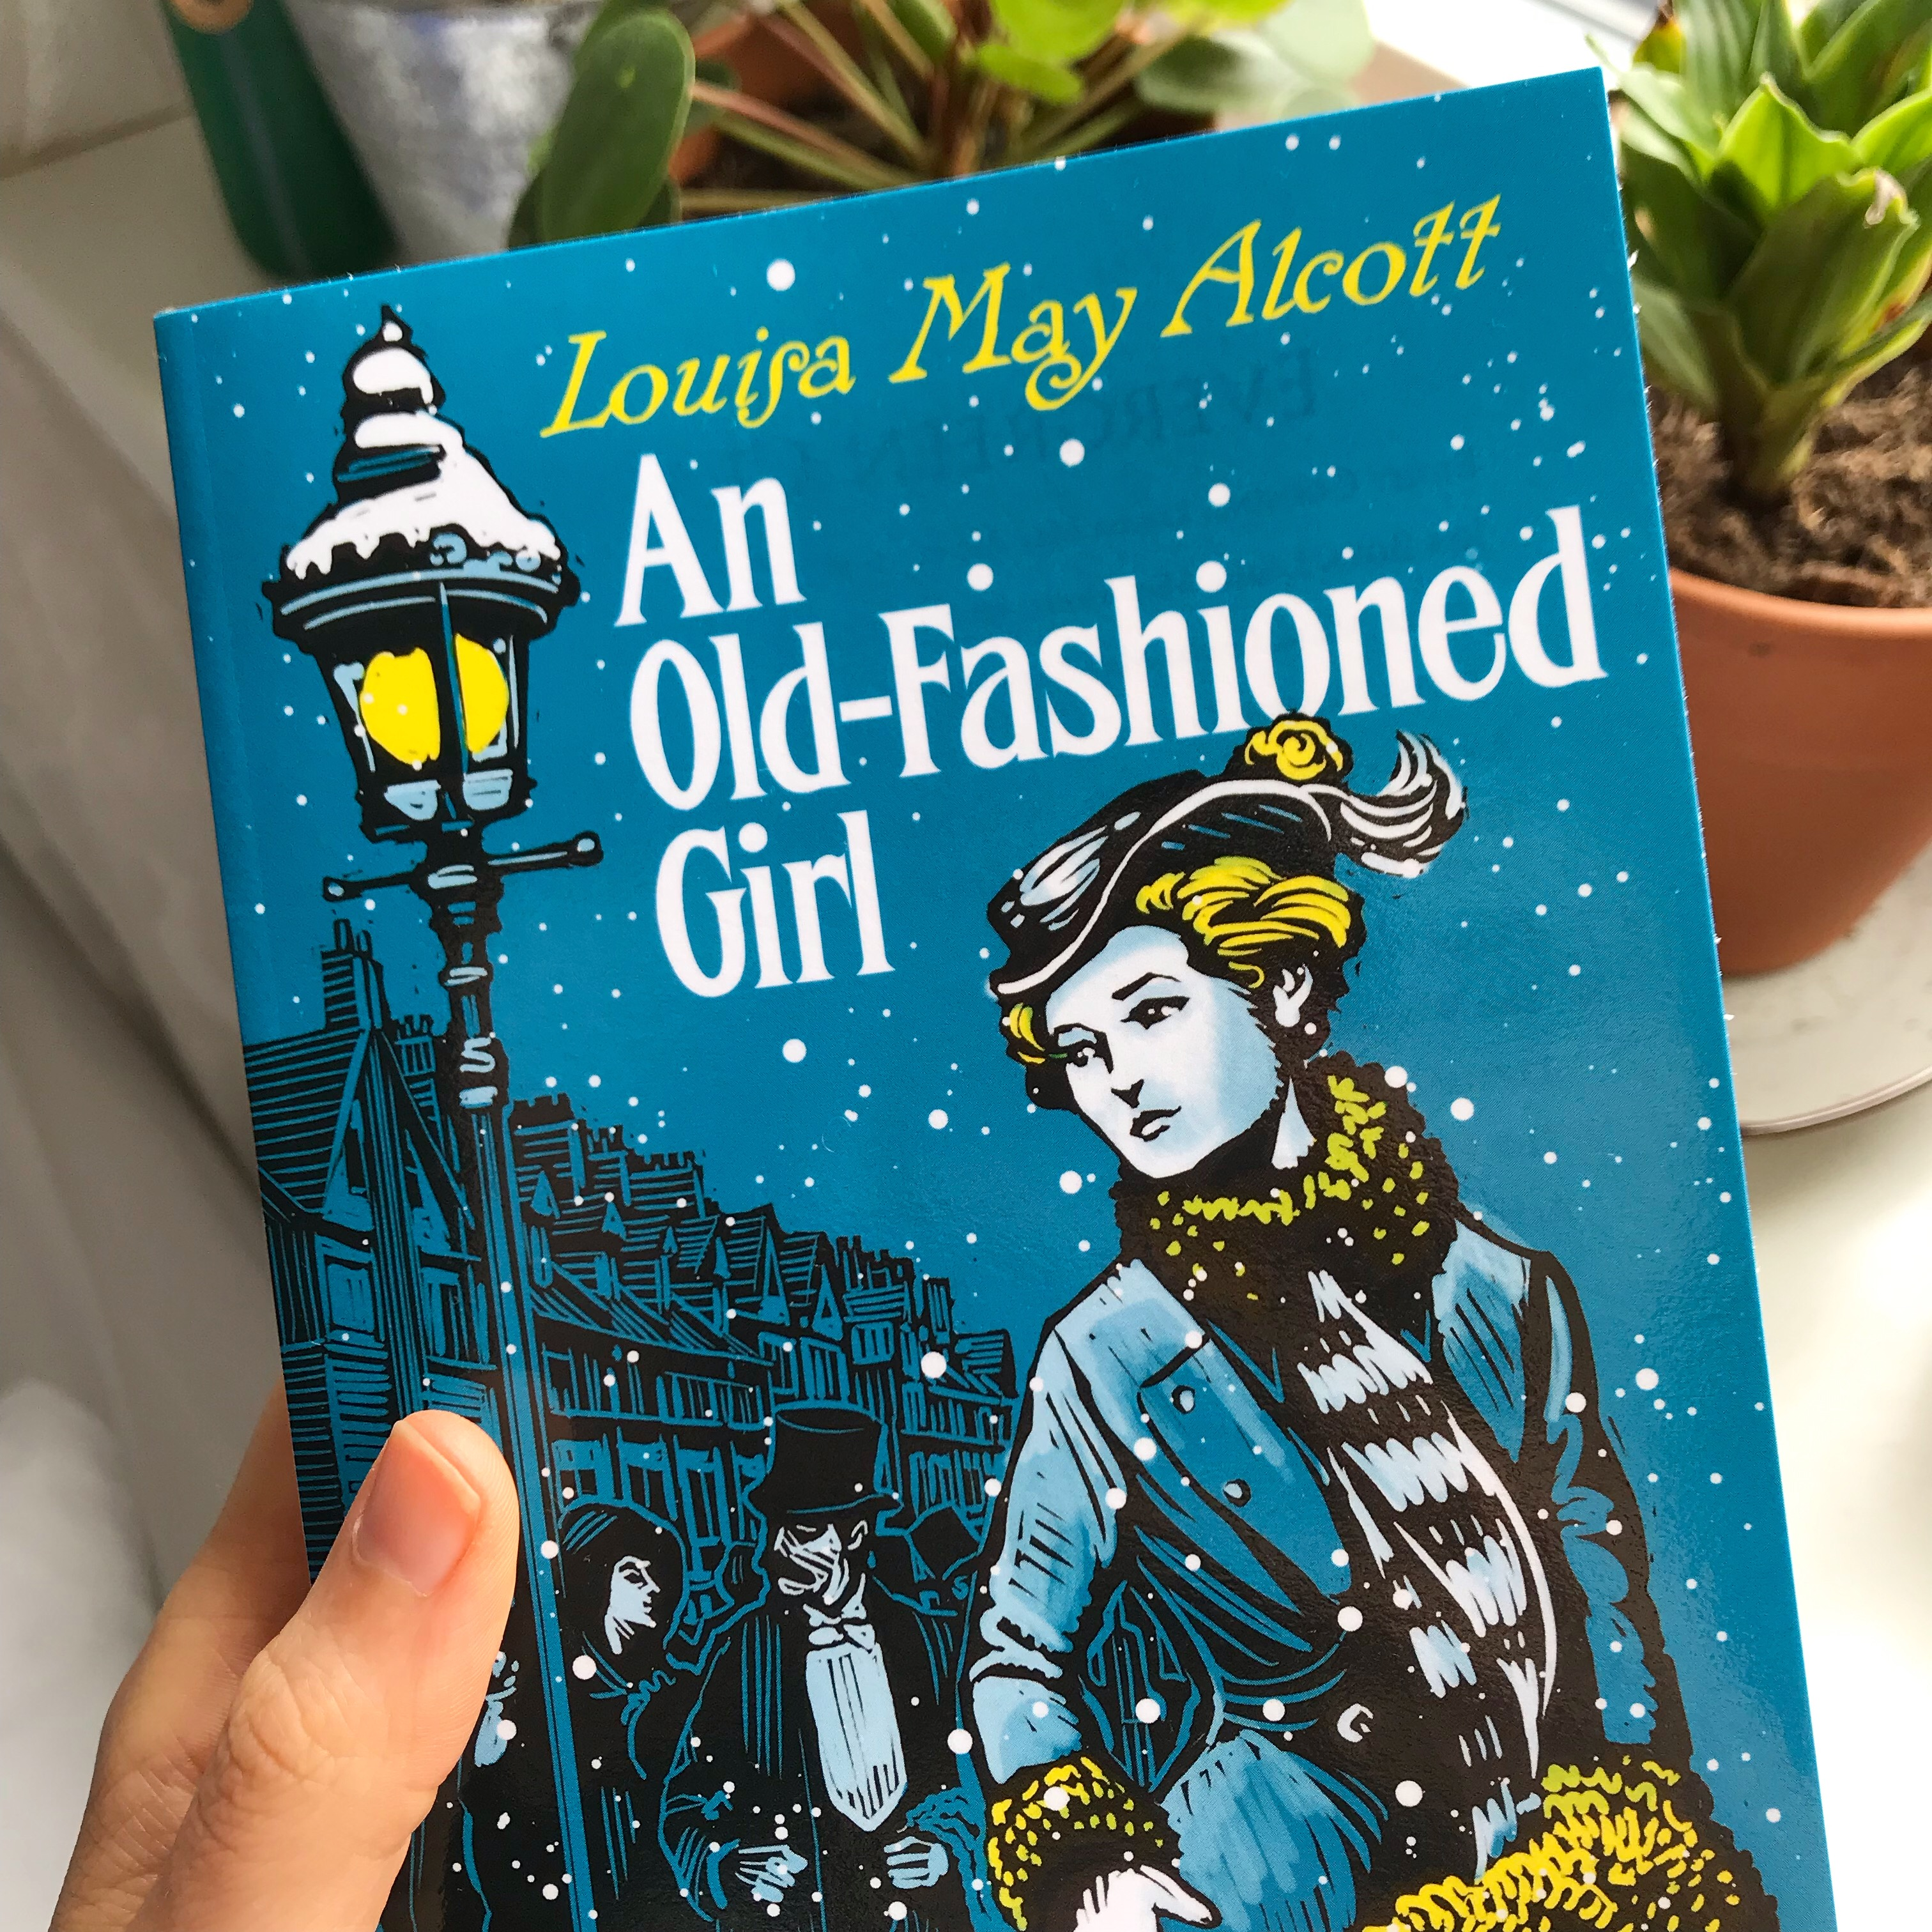 Book Review: An Old-Fashioned Girl